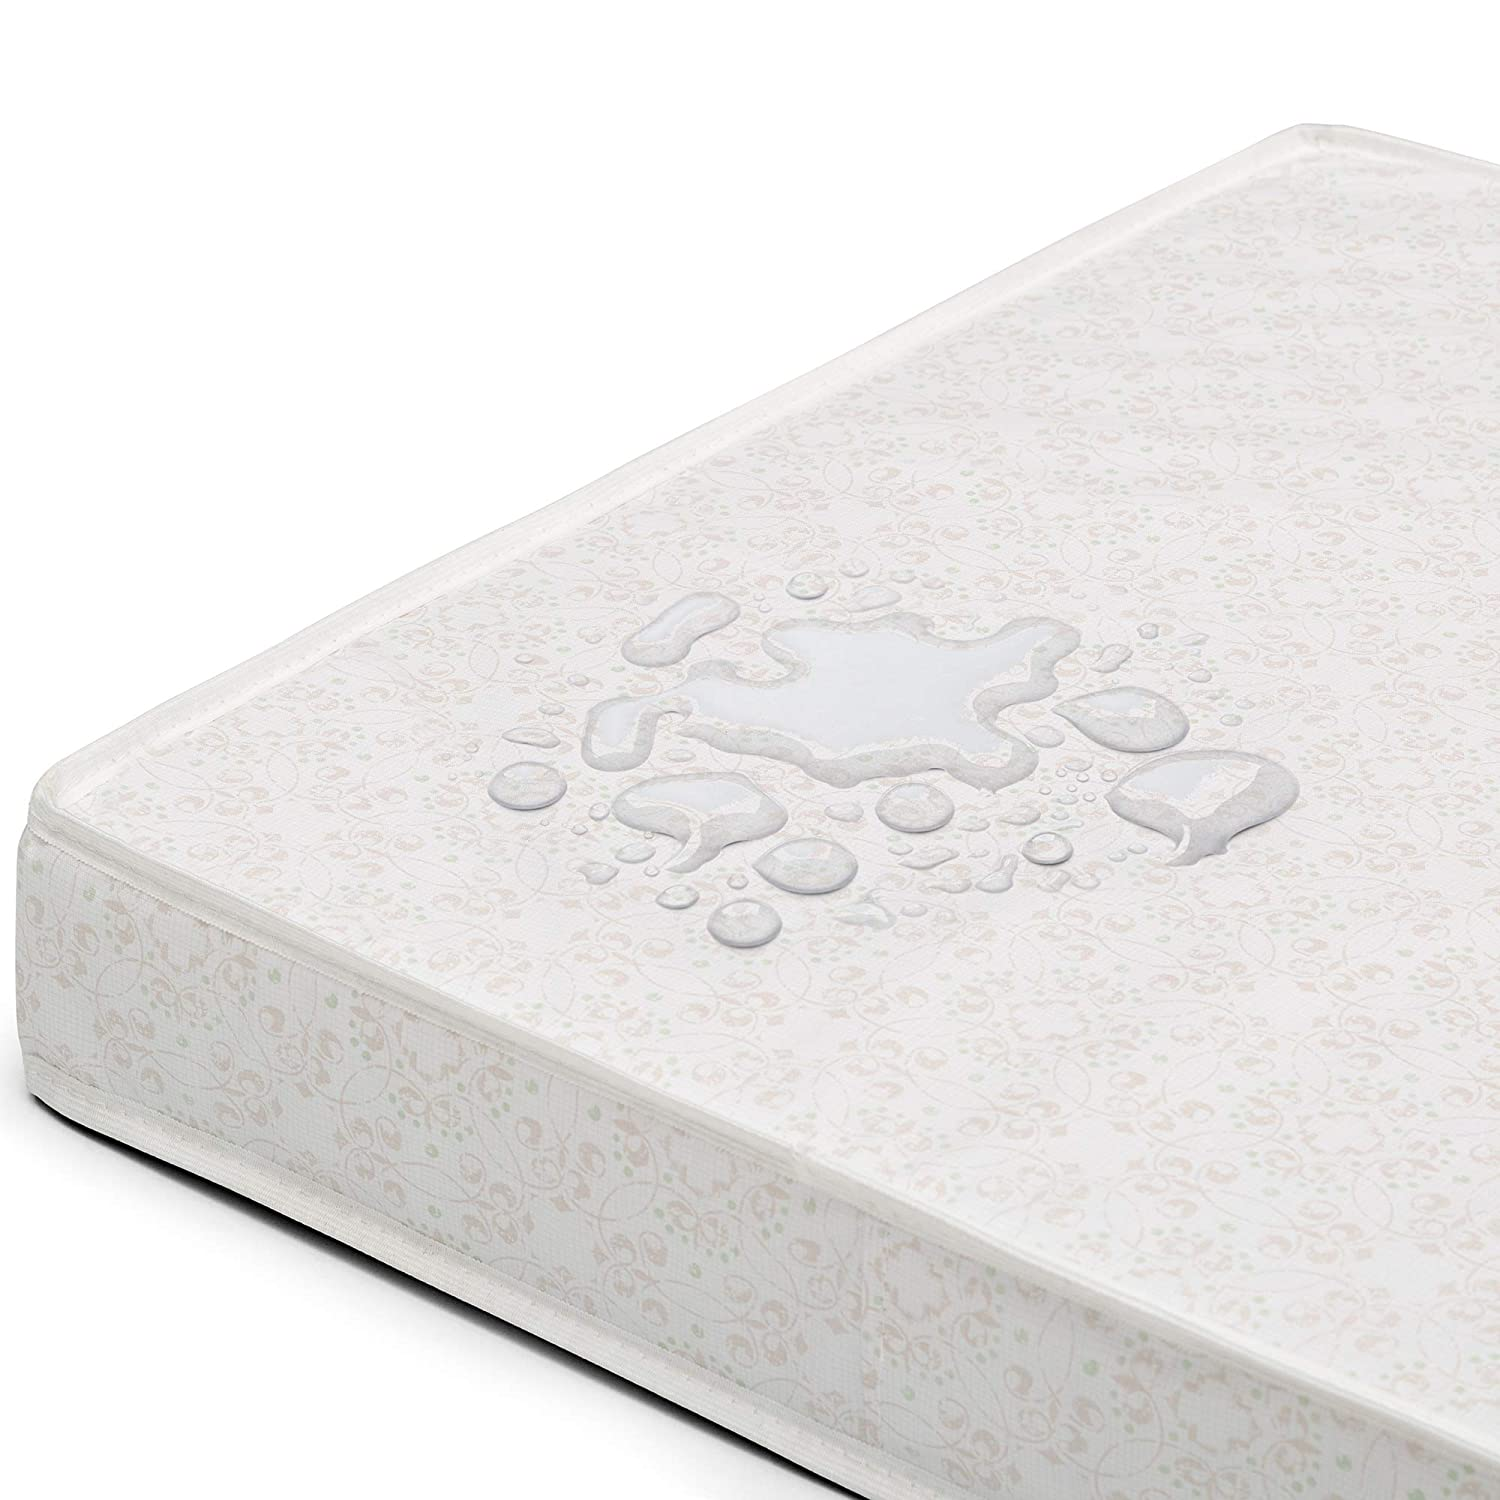 Amazon.com : Delta Children Emery Mini Convertible Baby Crib & Twinkle Stars 3-Inch Waterproof Mini Crib Mattress, Bianca White : Baby